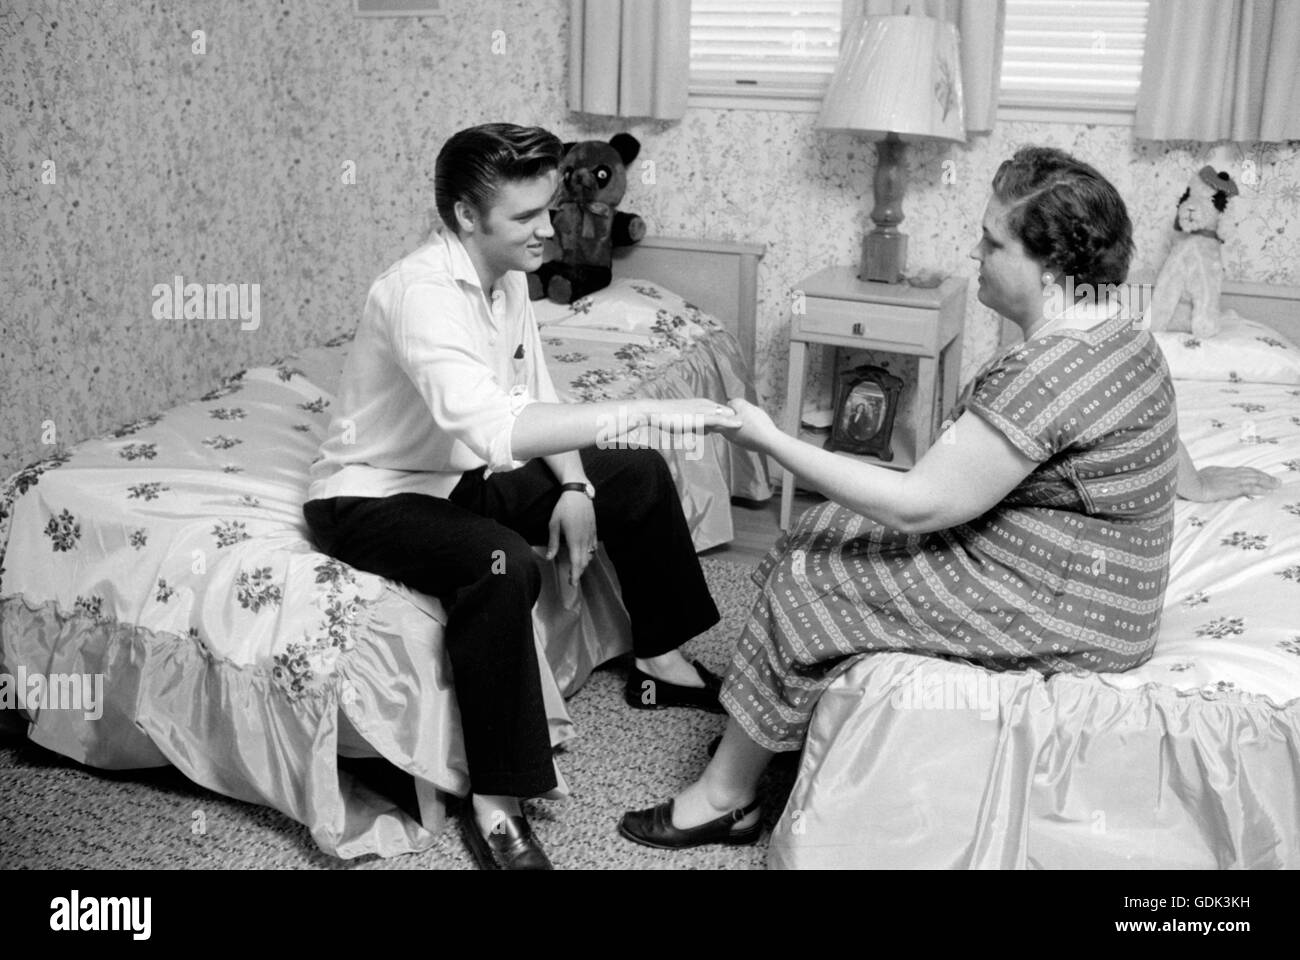 Elvis Presley and Gladys at home - Stock Image